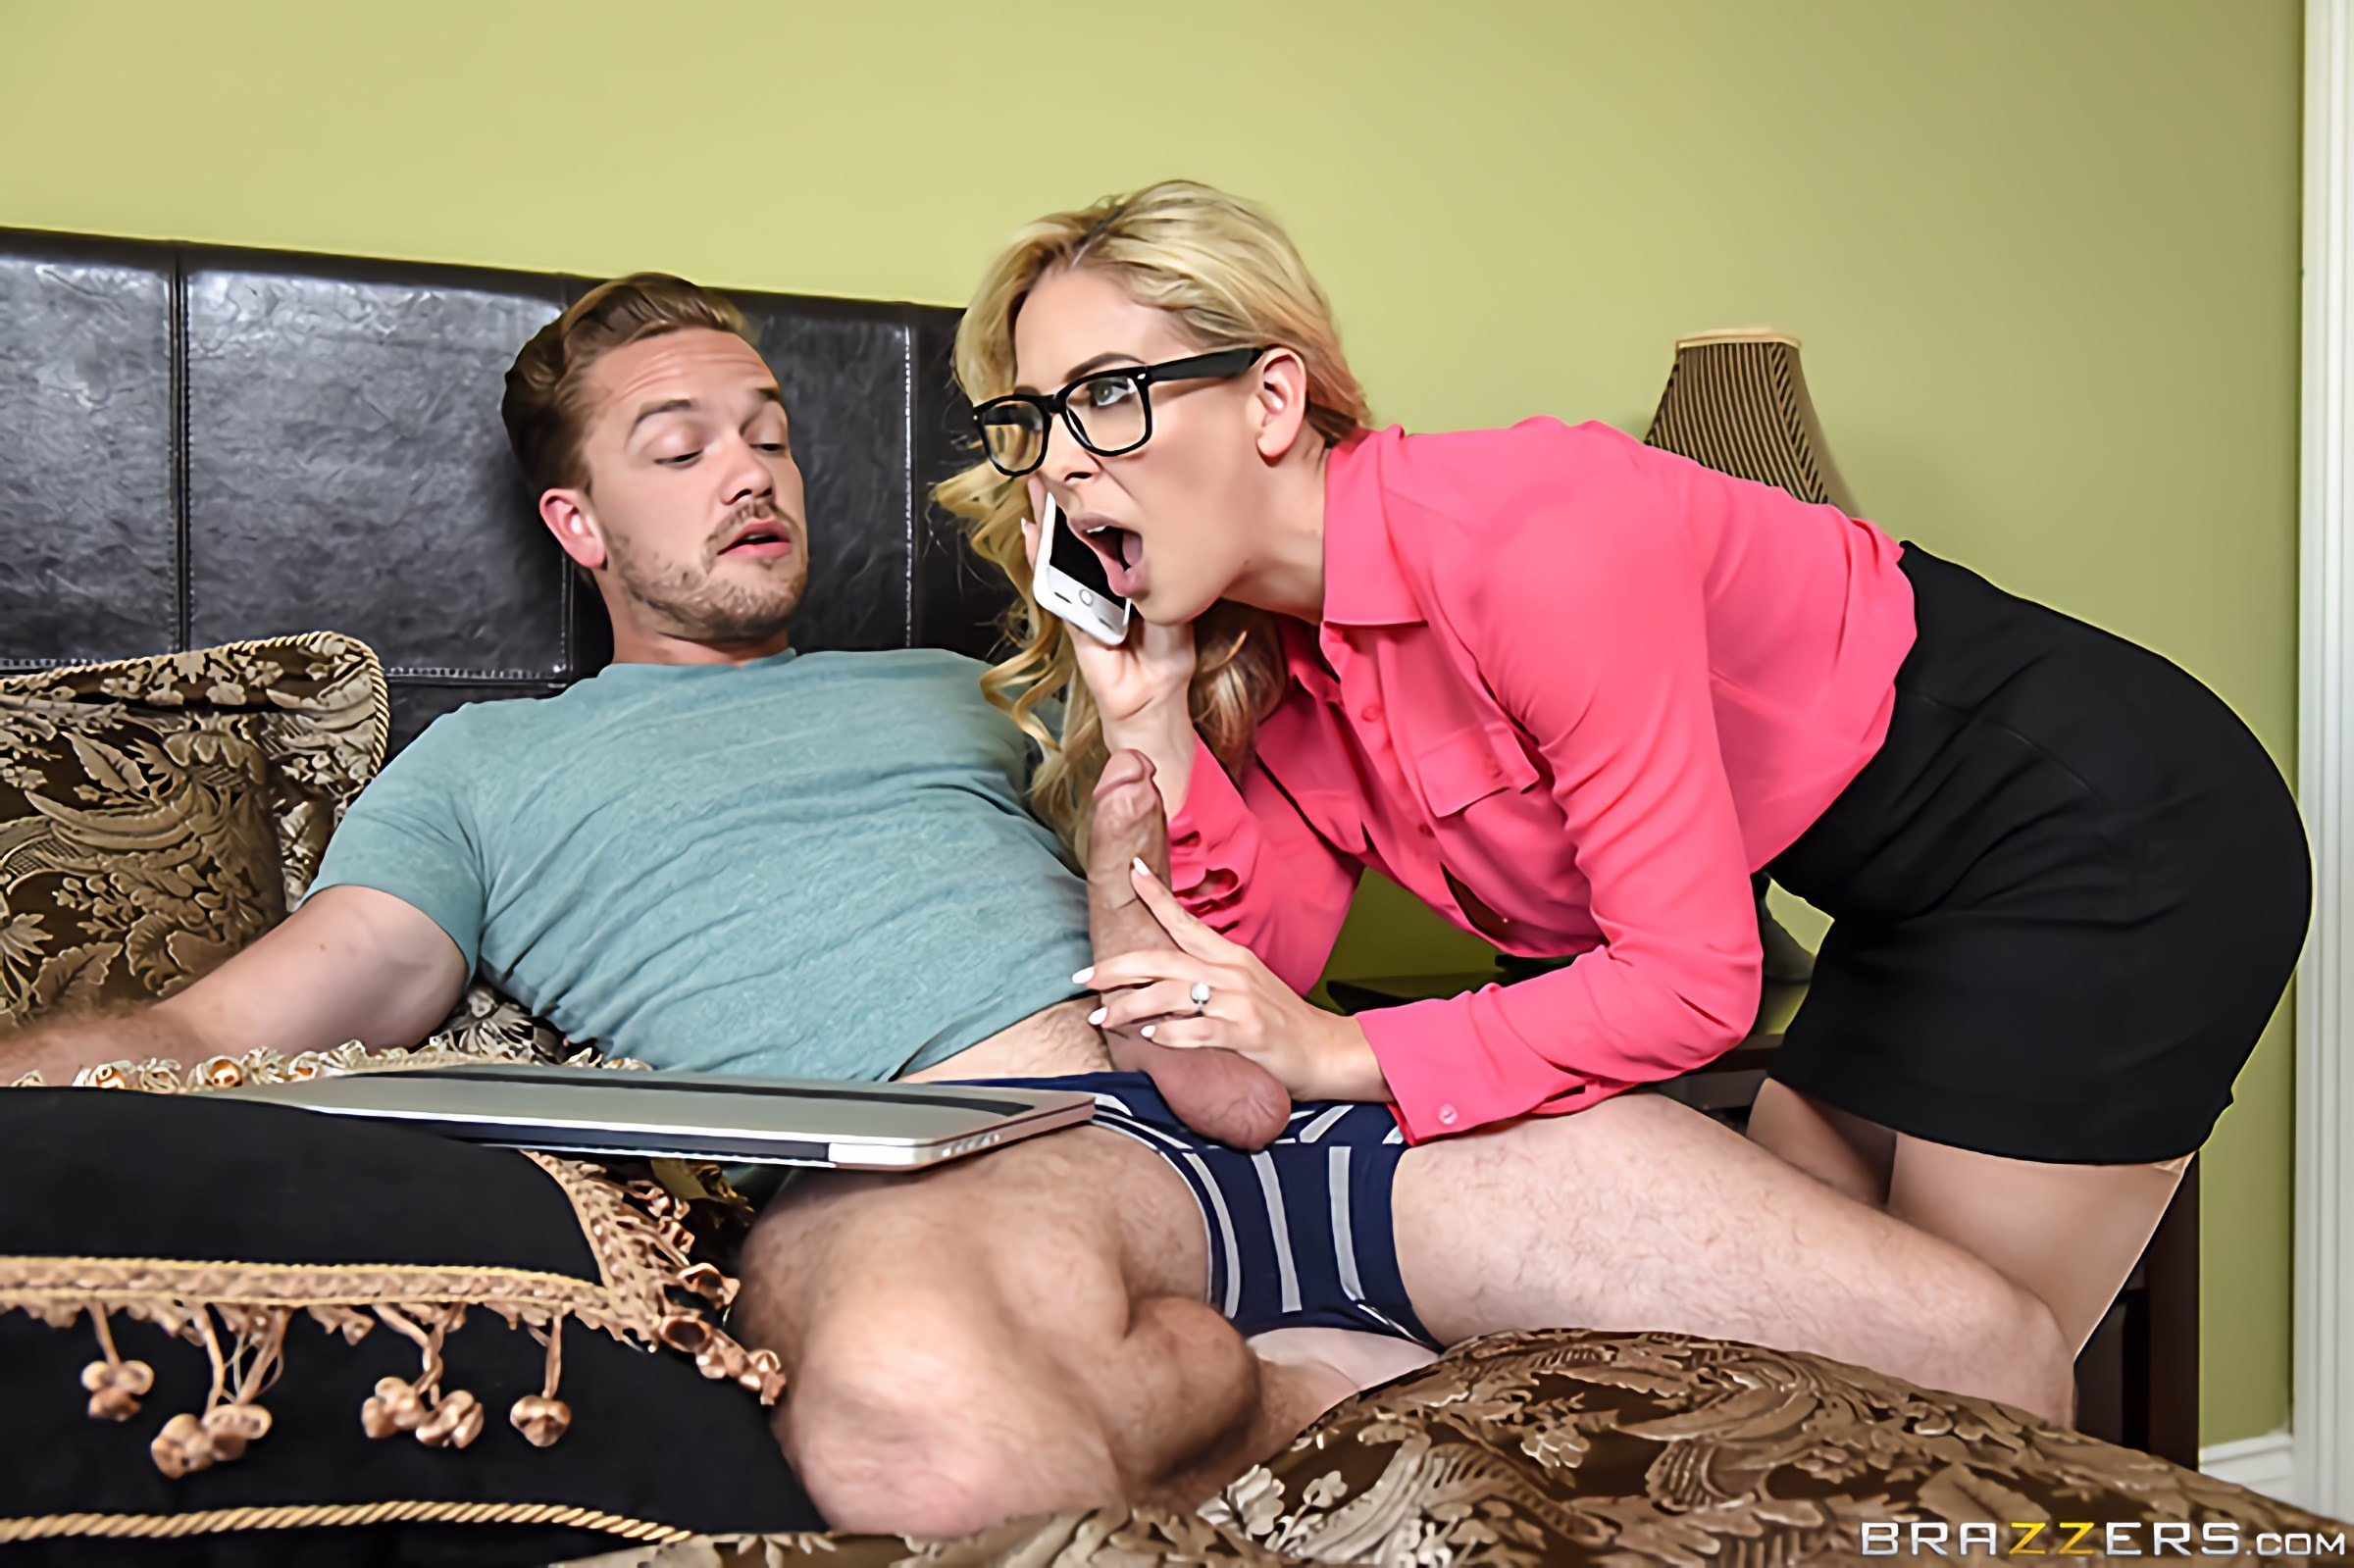 Brazzers 'Moms Got A Meeting' starring Cherie Deville (photo 1)